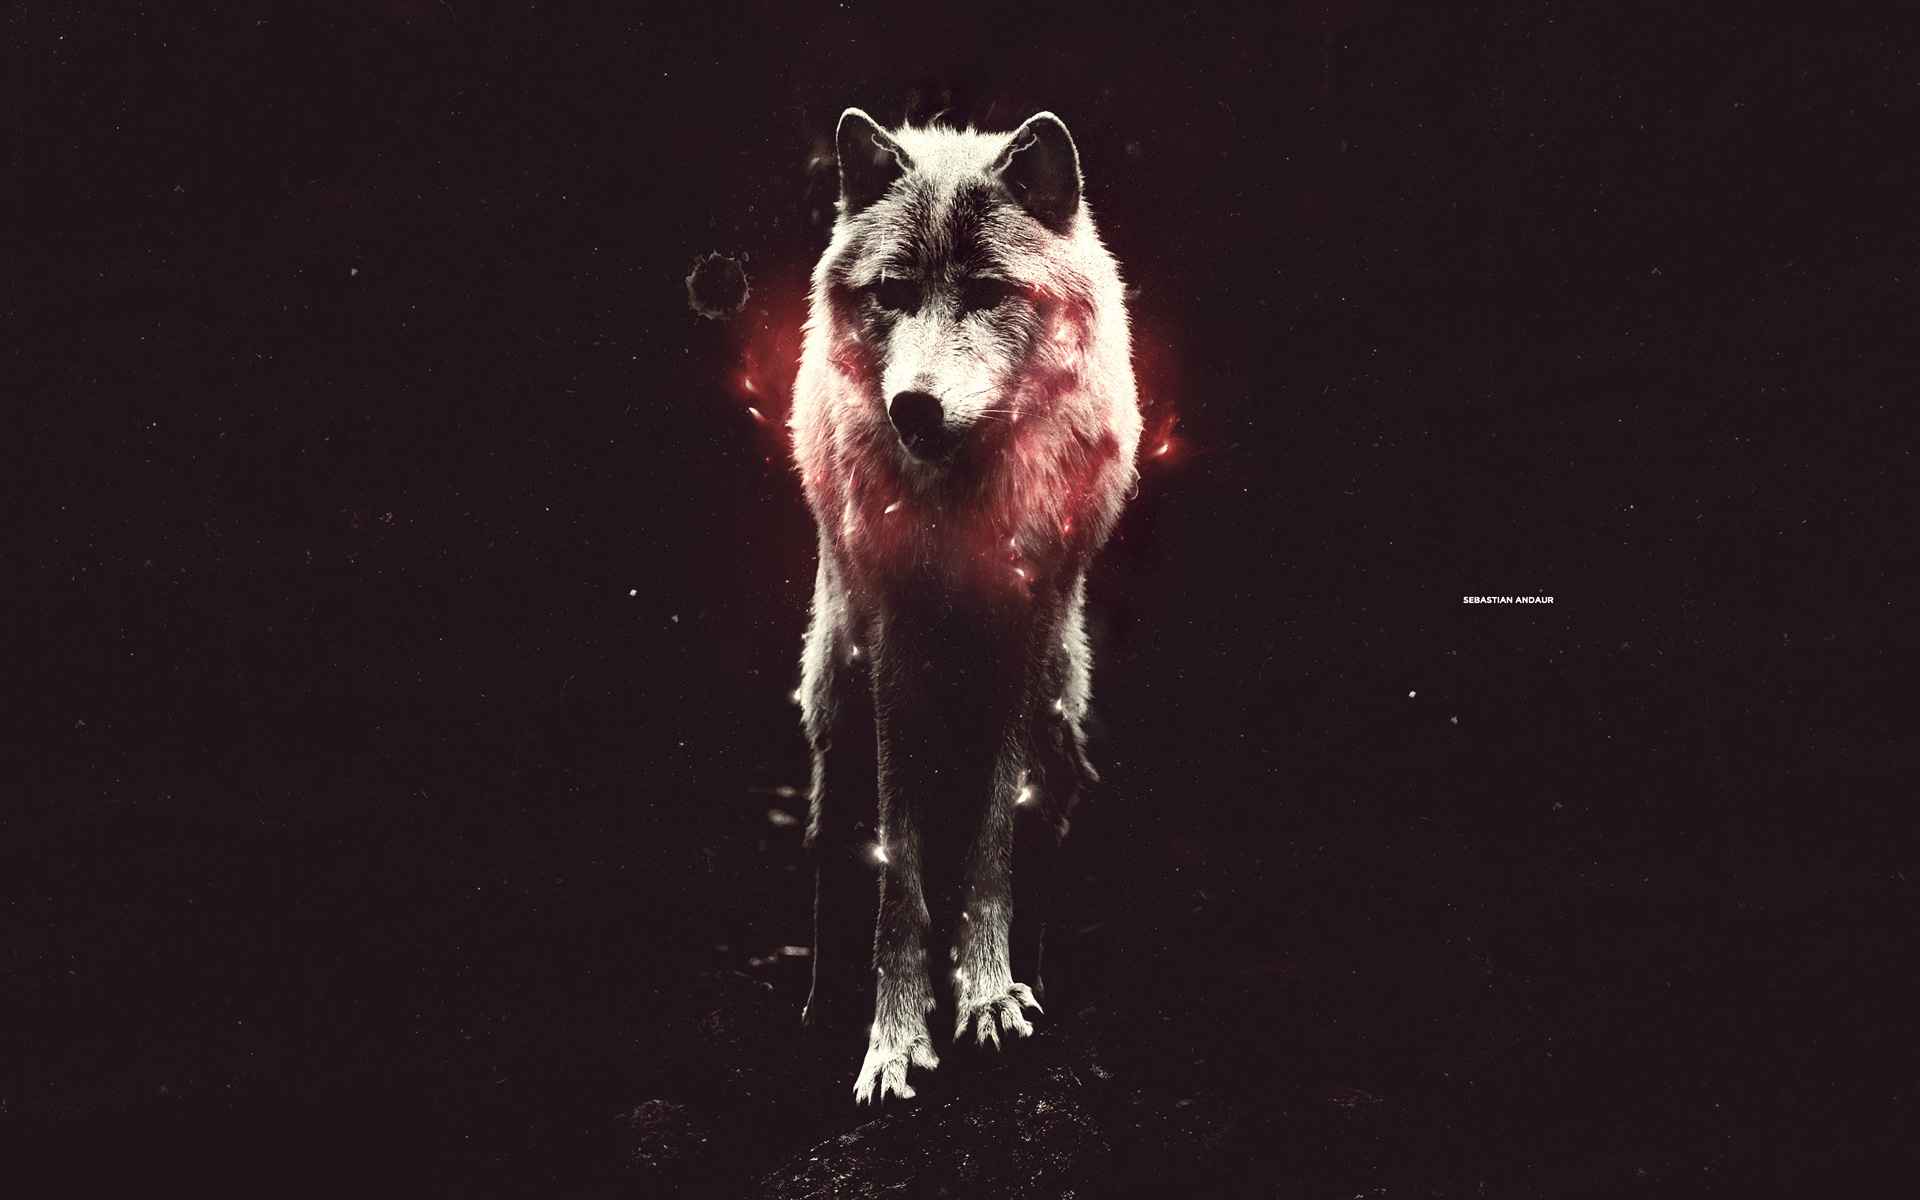 Cool Wallpaper Abstract Wolf - abstract-wallpaper1  Image_571110 .jpg